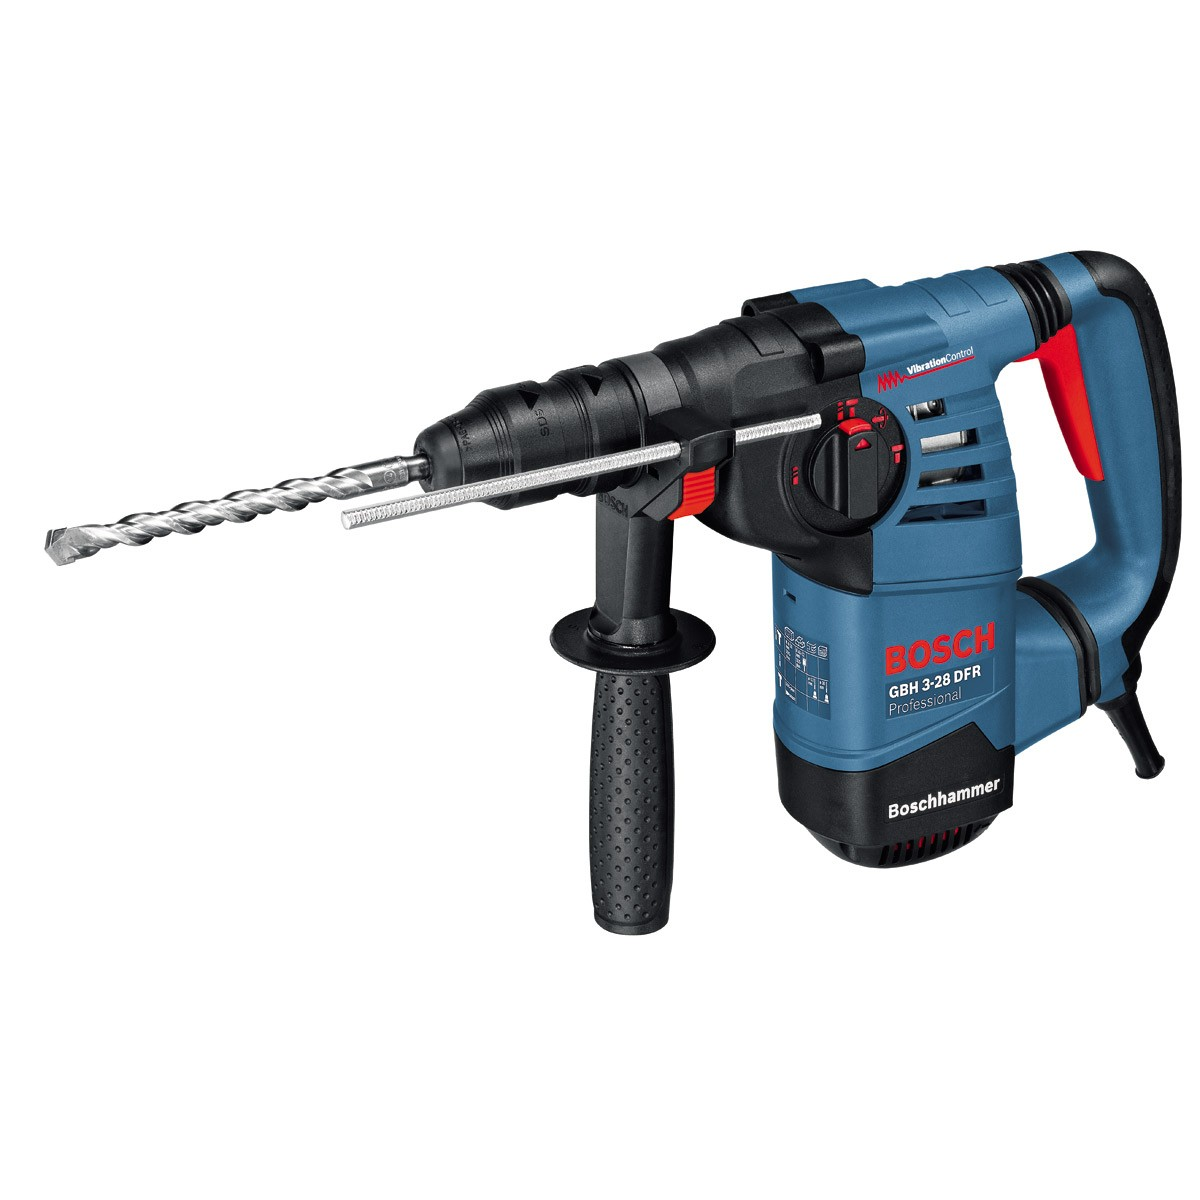 Bosch GBH 3-28 DFR SDS+ Rotary Hammer & QCC